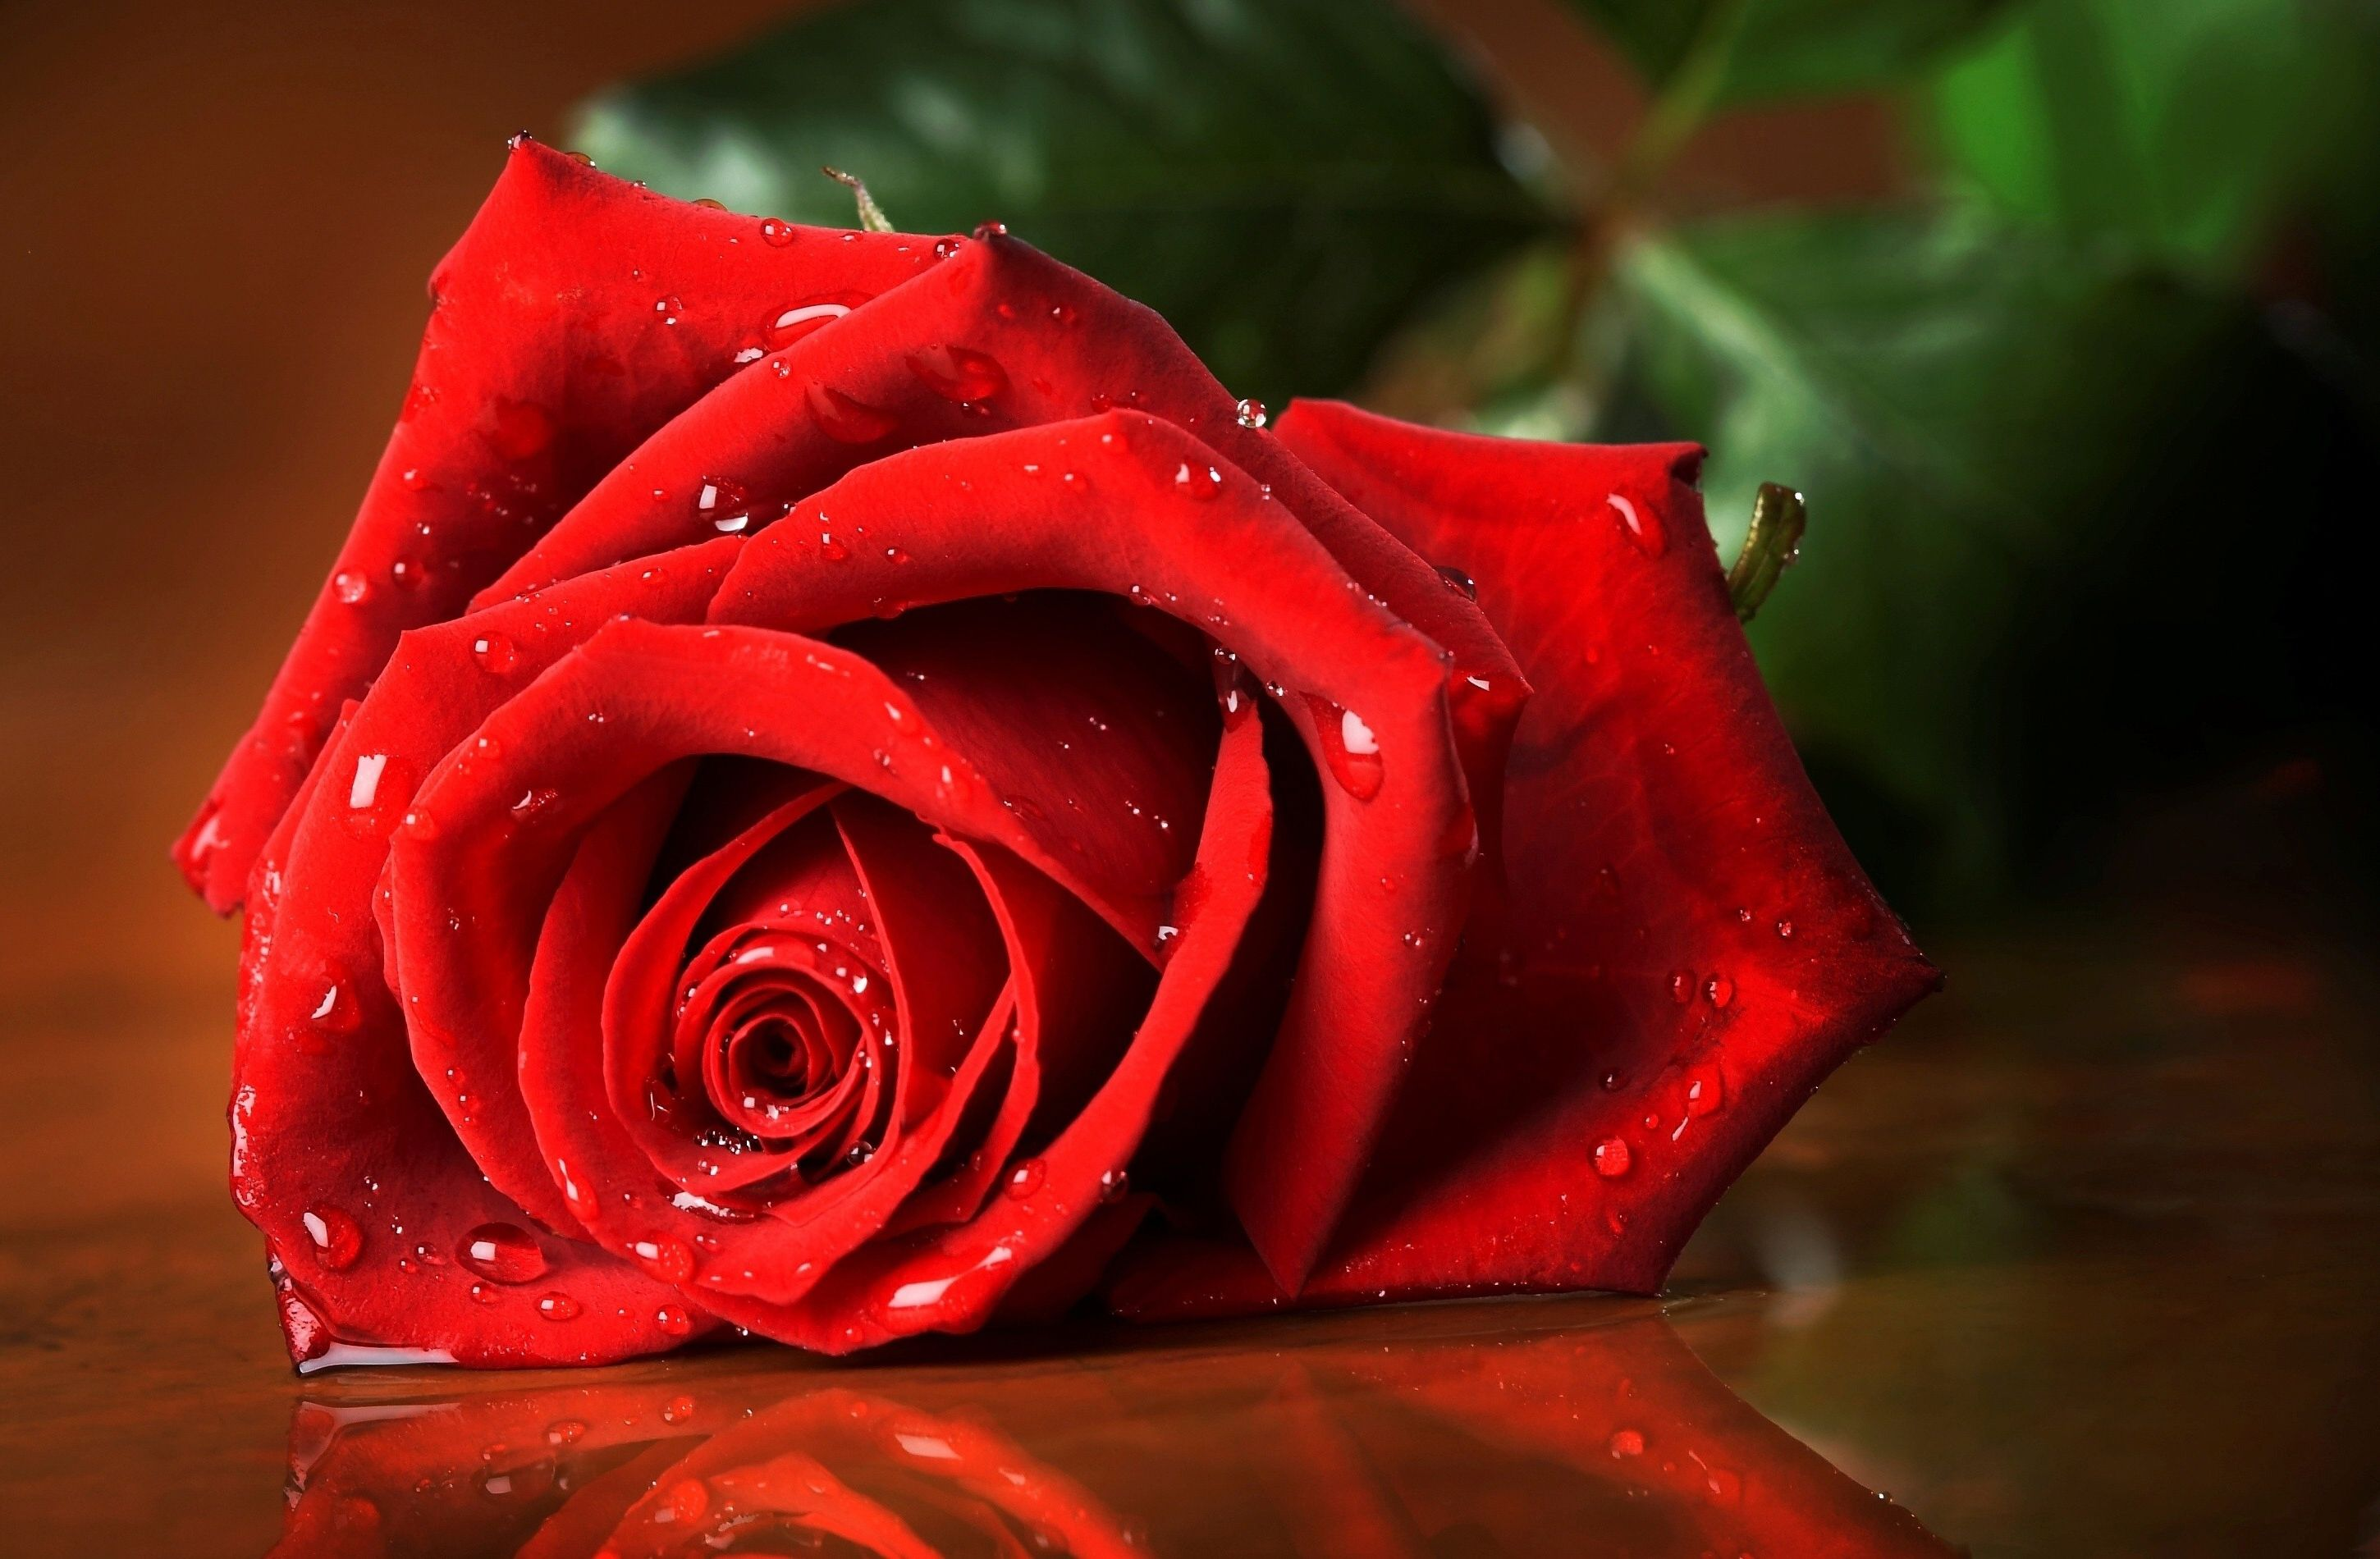 Best Images Of Love Rose Hd Love Rose Hd Wallpaper Rocks Wallpaper Hd Pertaining To Best Images Of Love Rose H Rose Wallpaper Beautiful Red Roses Red Roses